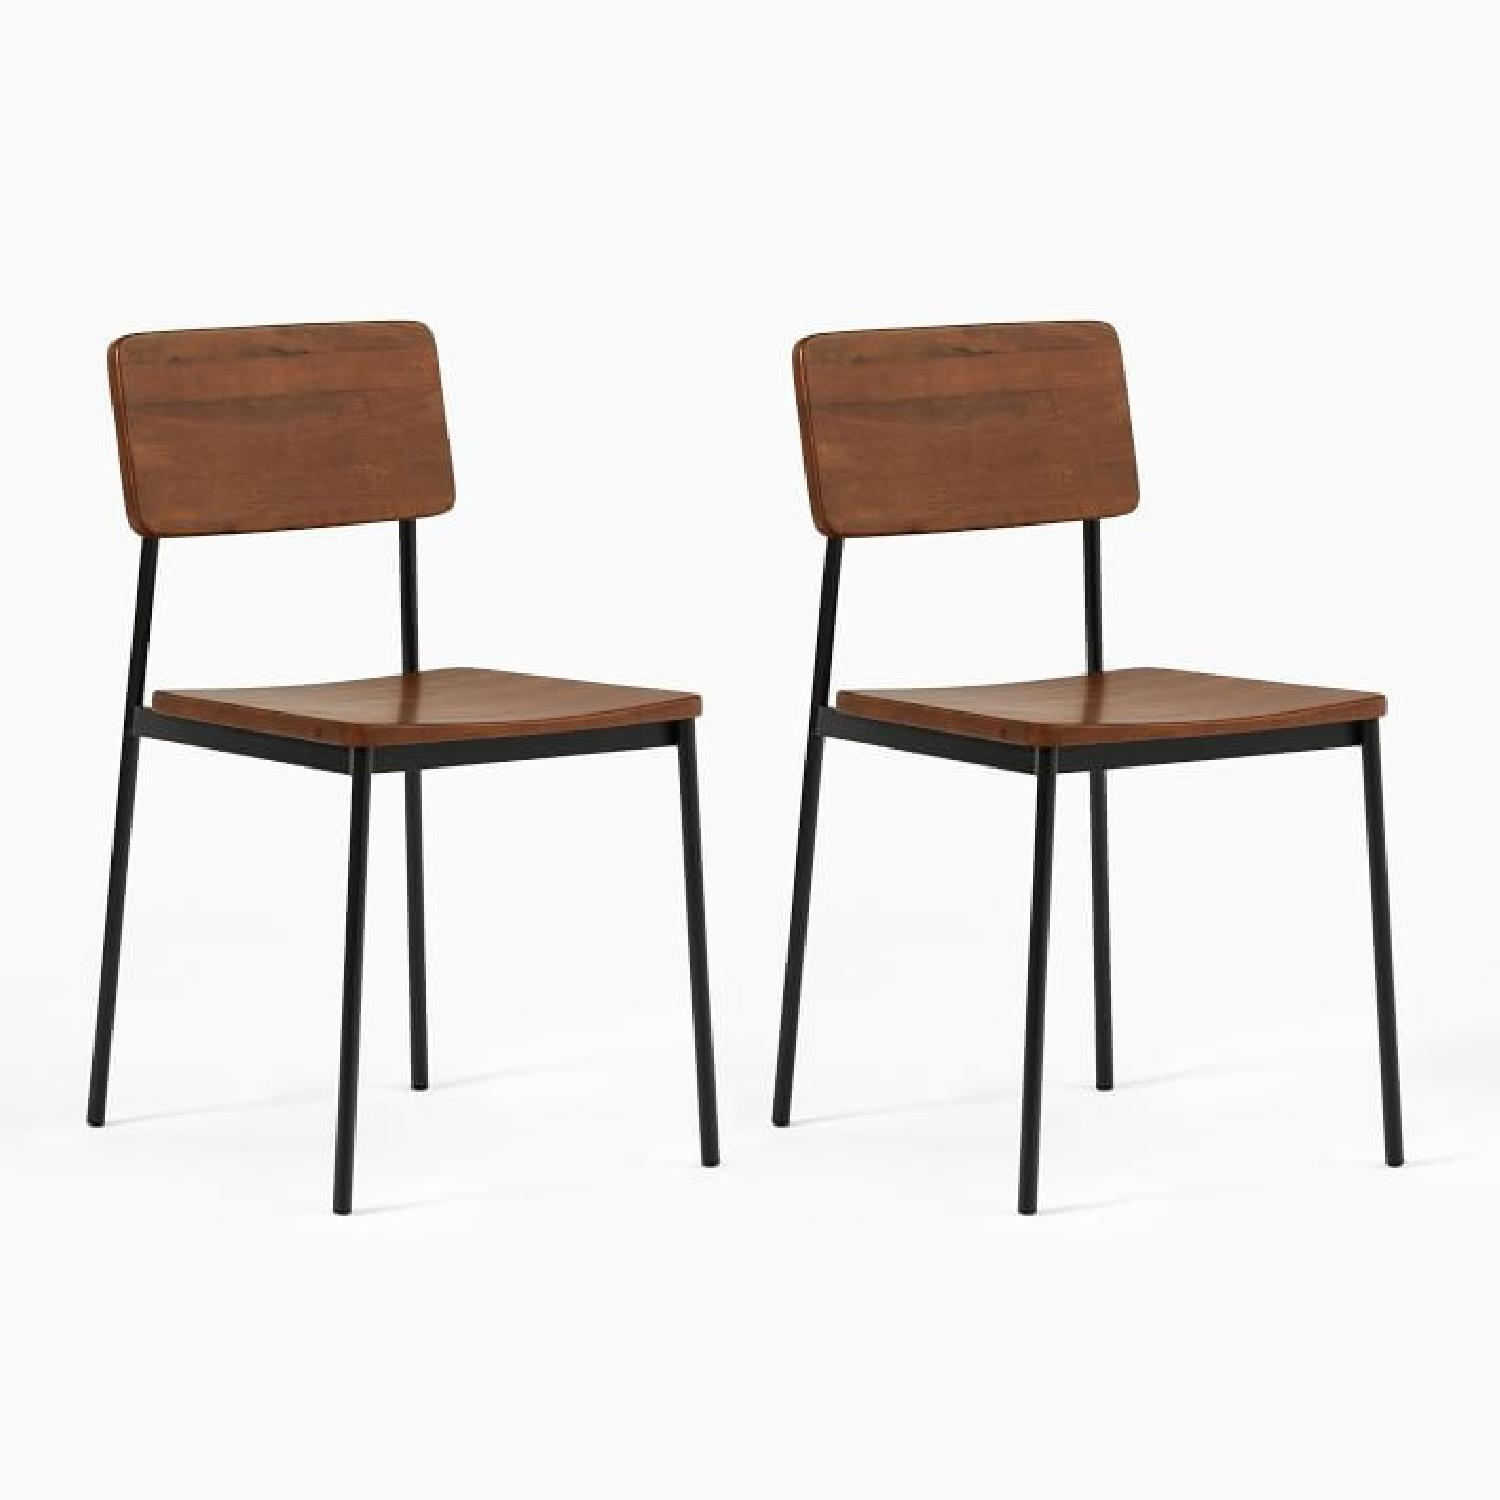 West Elm Augusta Dining Chair (Set of 2) - image-0